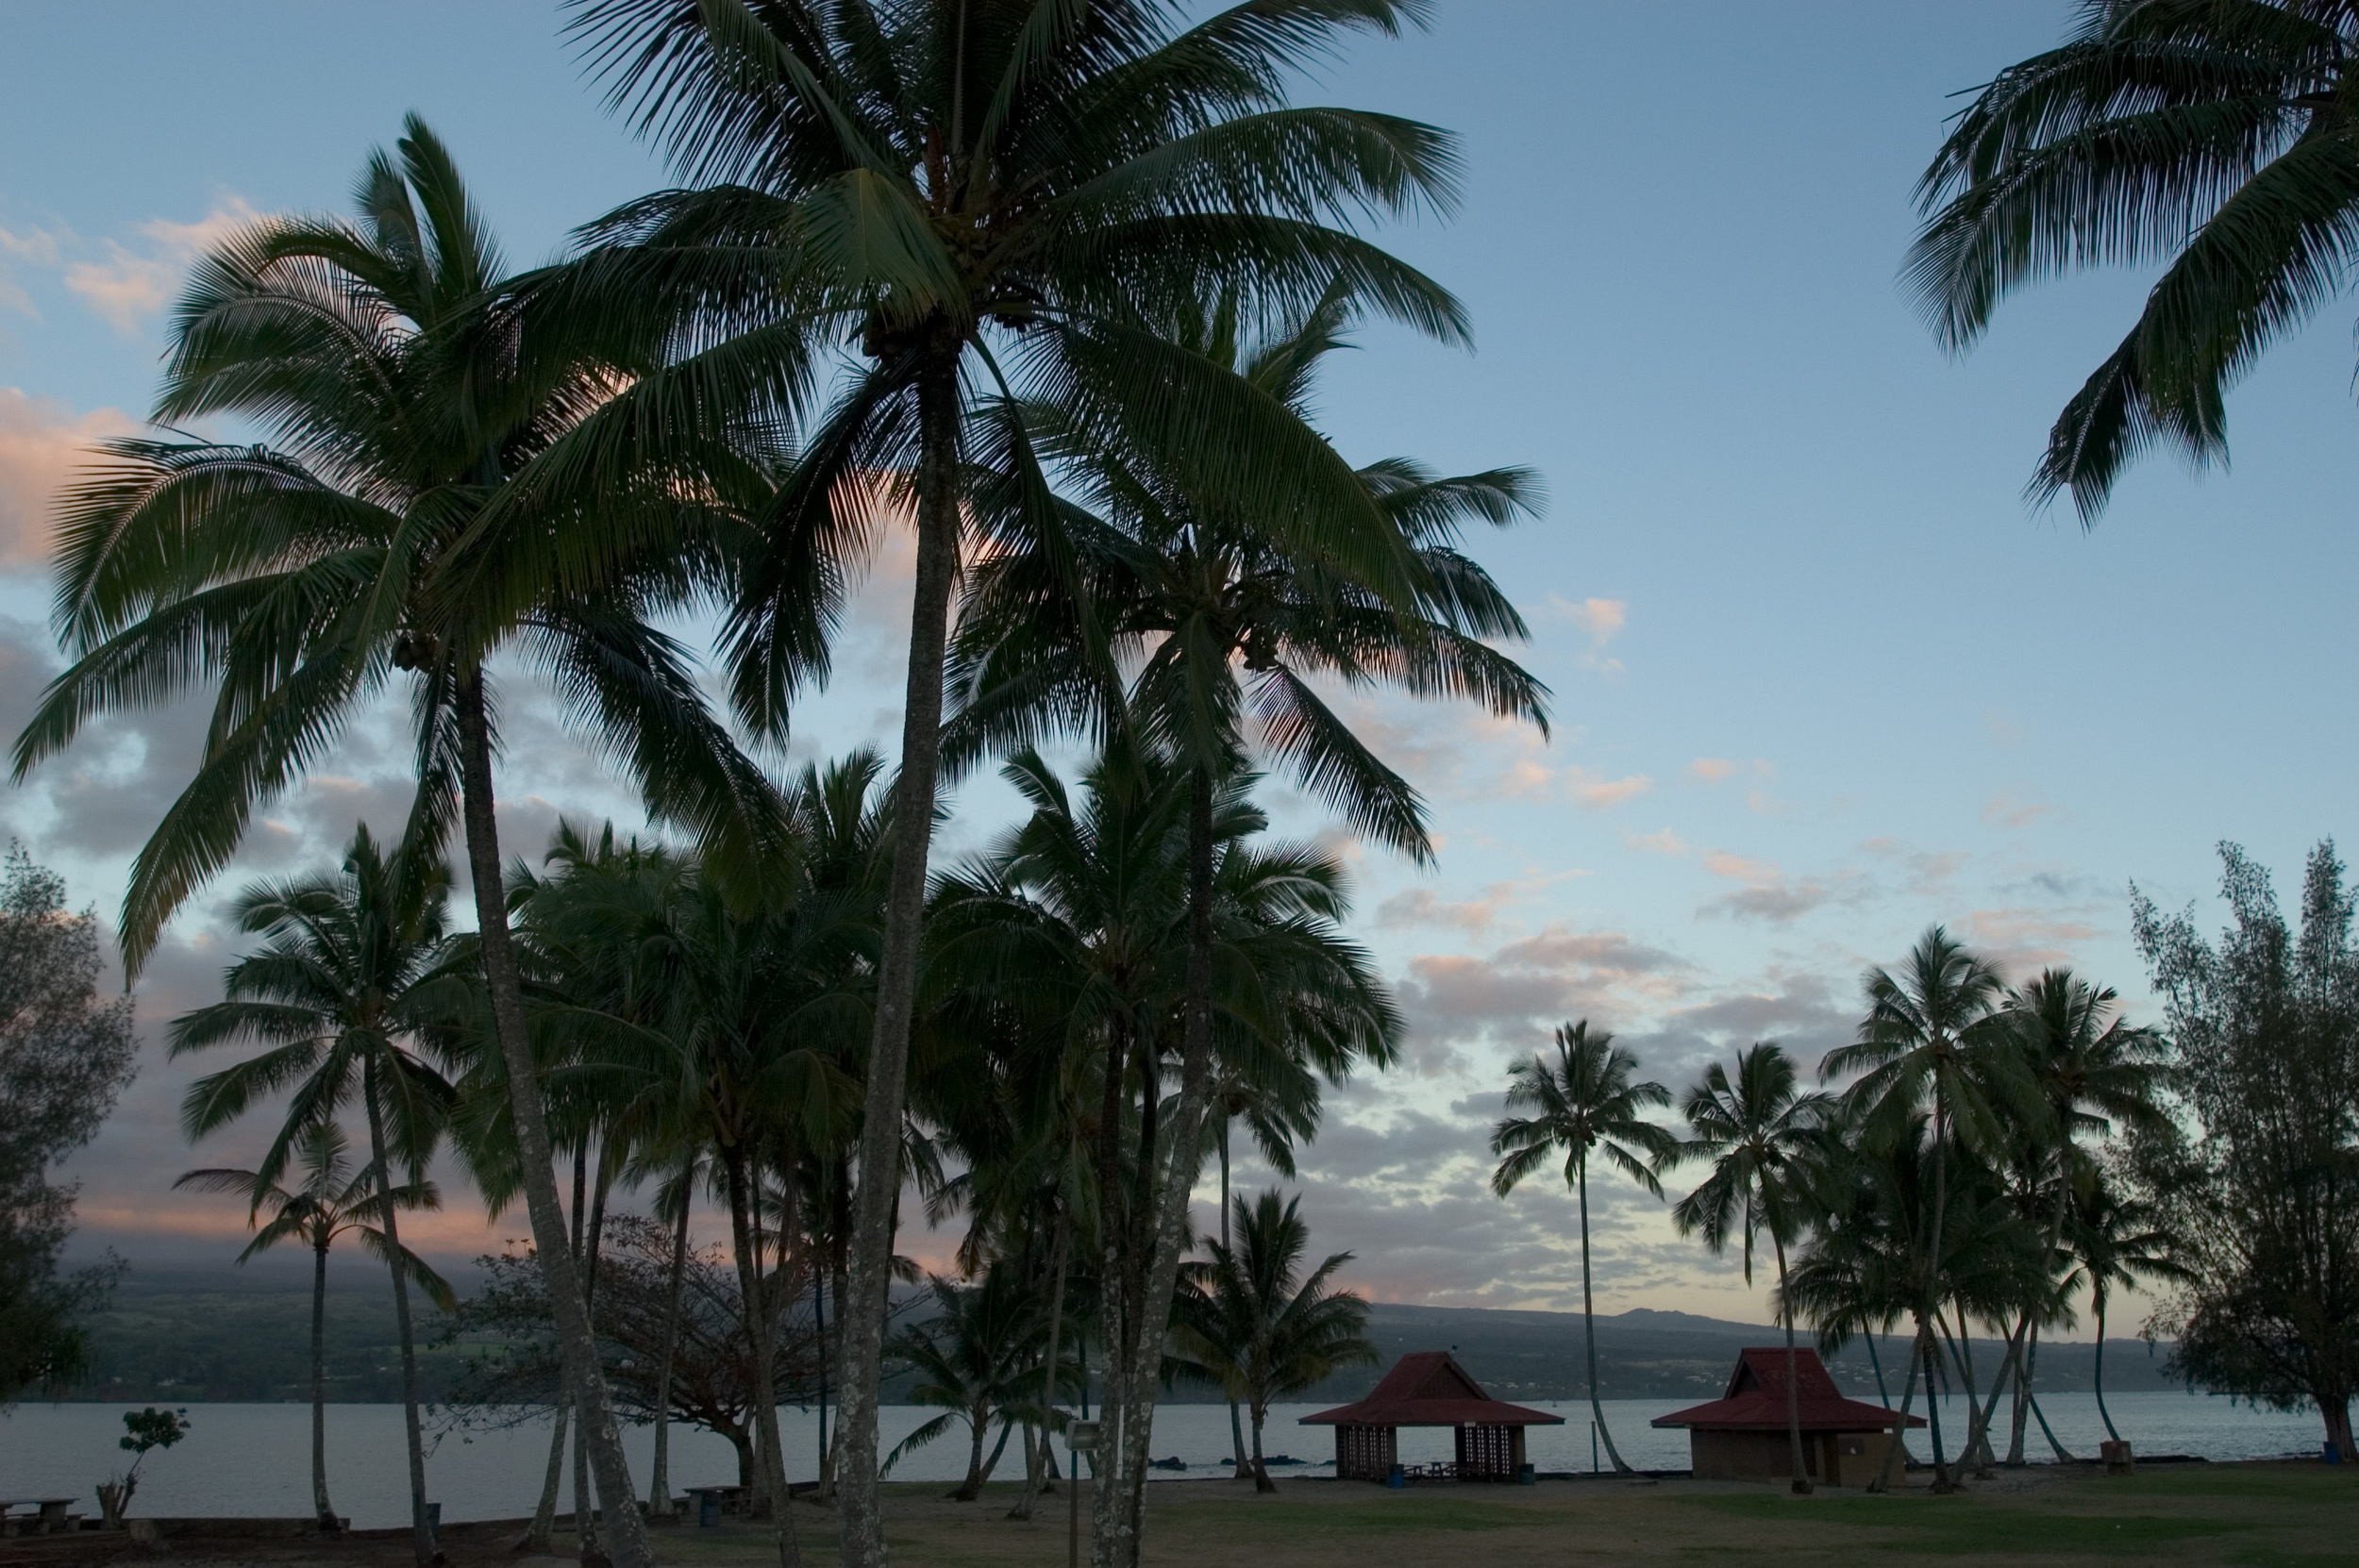 To get our minds off of the cold, here's an image of beautiful Hawai'i taken by Edwin Remsberg